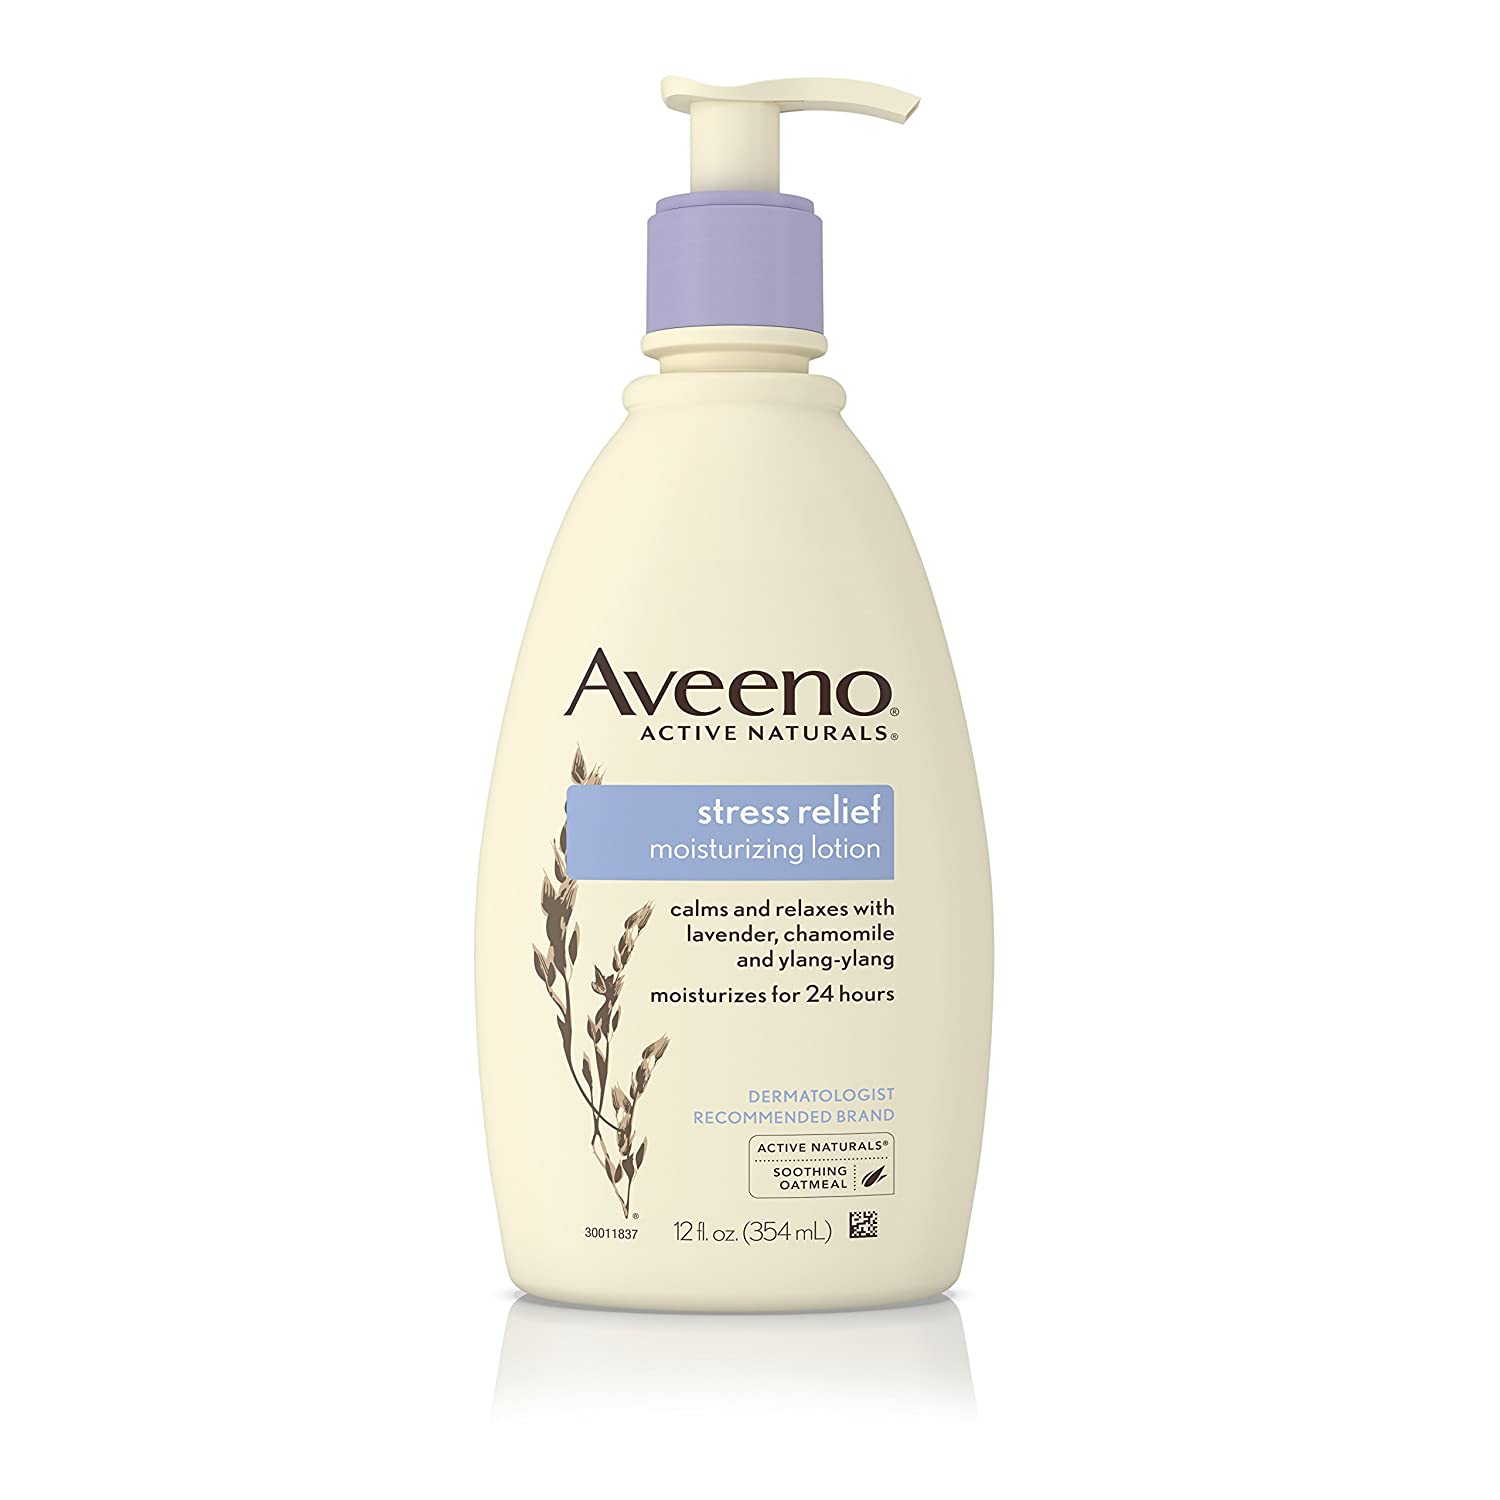 Aveeno Stress Relief Moisturizing Lotion 355 ml HealthCentre 381370039167